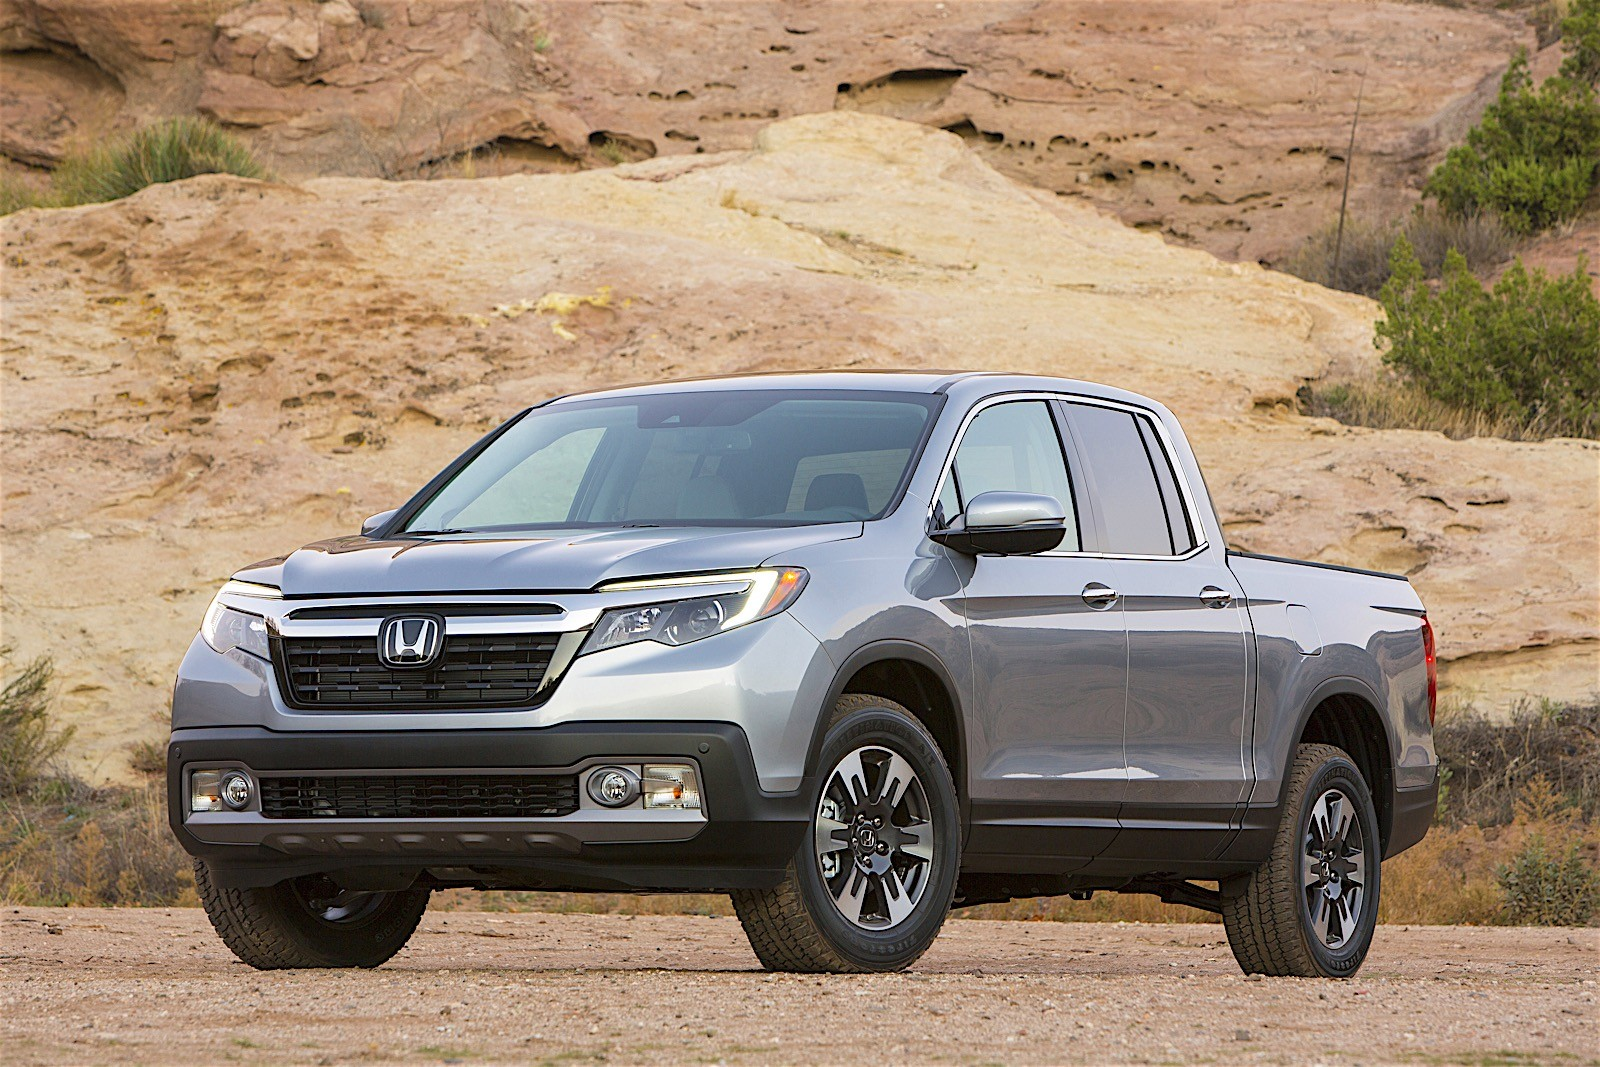 2017 Honda Ridgeline Debuts with Industry-First In-Bed Audio System - autoevolution